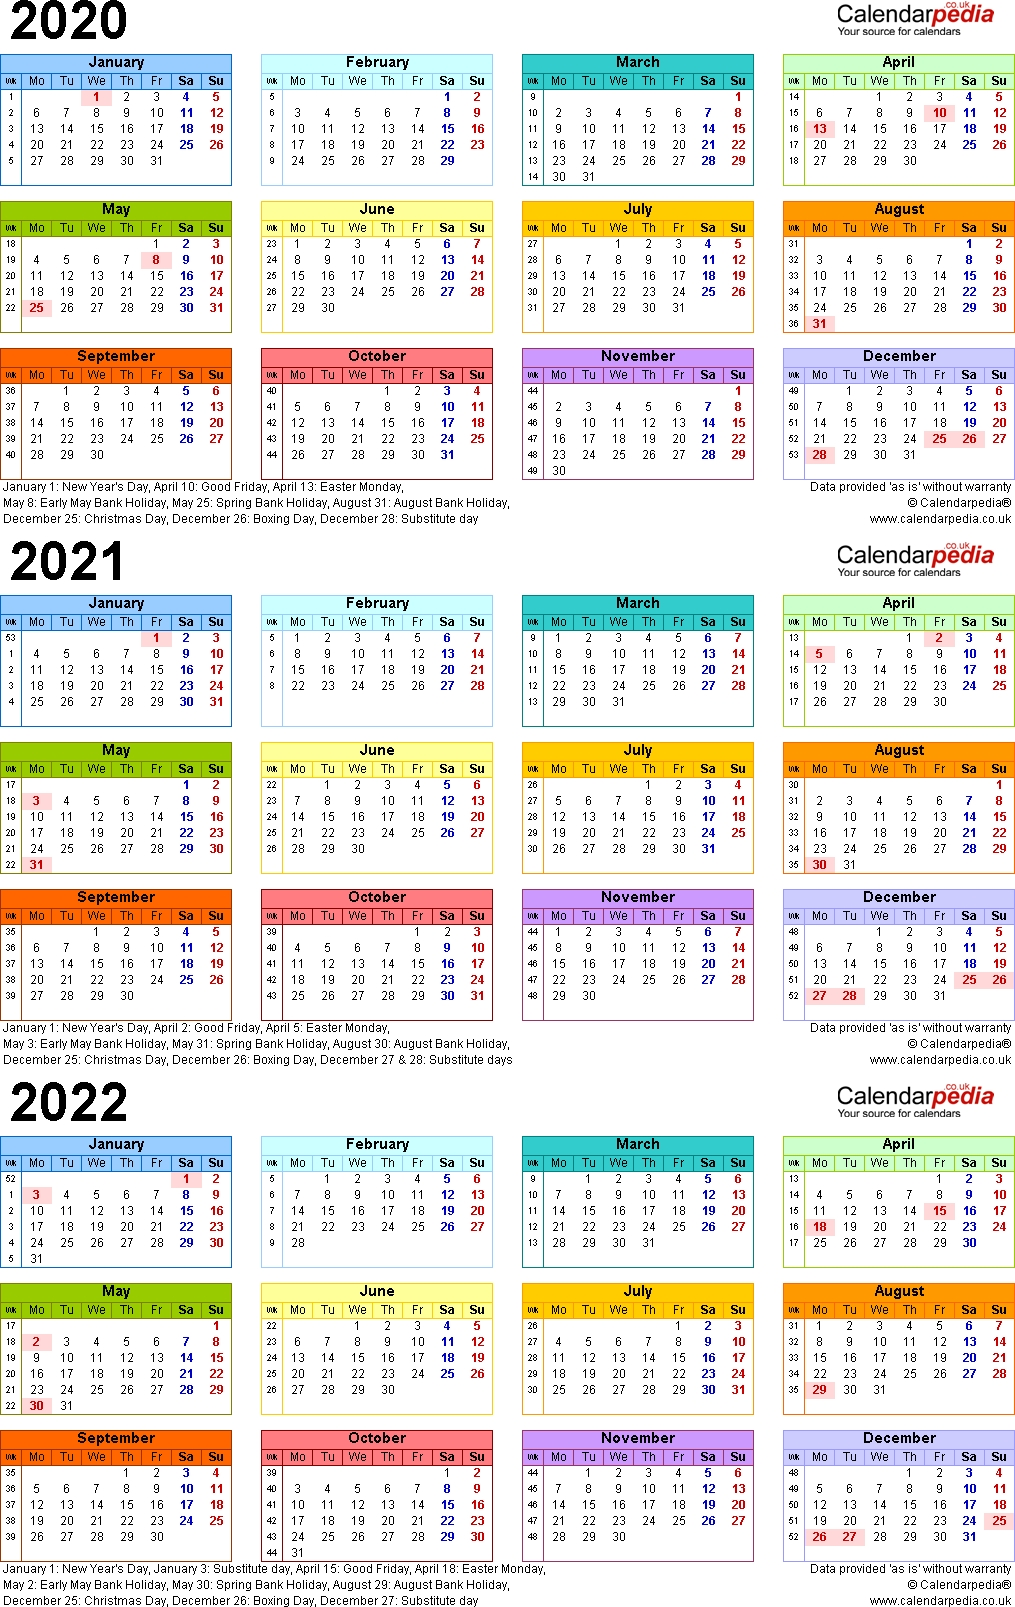 Three Year Calendars For 2020, 2021 & 2022 (Uk) For Word in Three-Year Calendar 2019, 2020, 2021